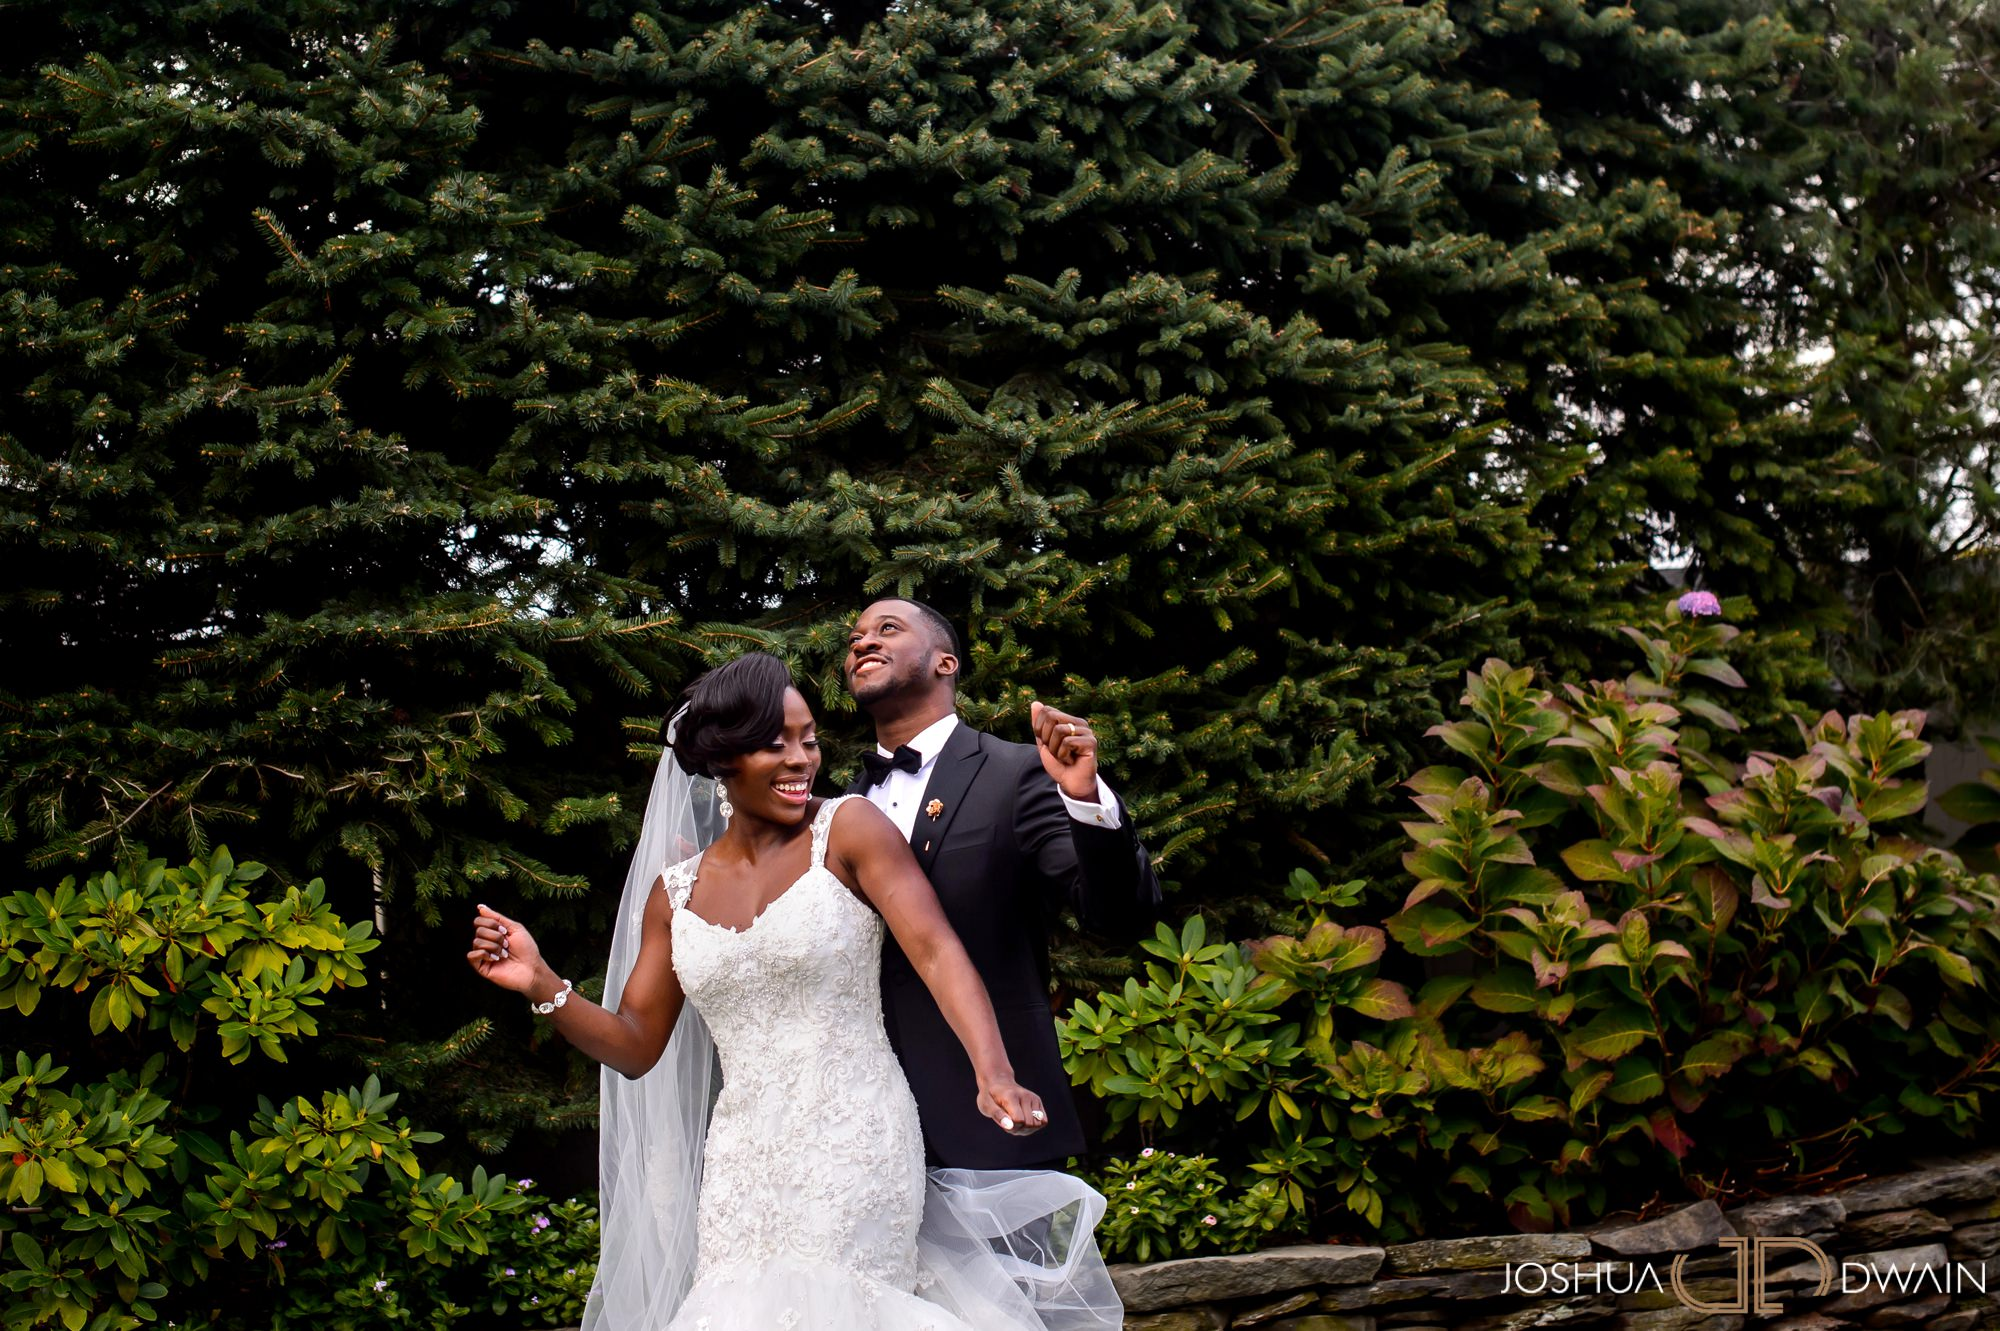 stephanie-richard-20-westmount-country-club-joshua-dwain-nj-wedding-photography